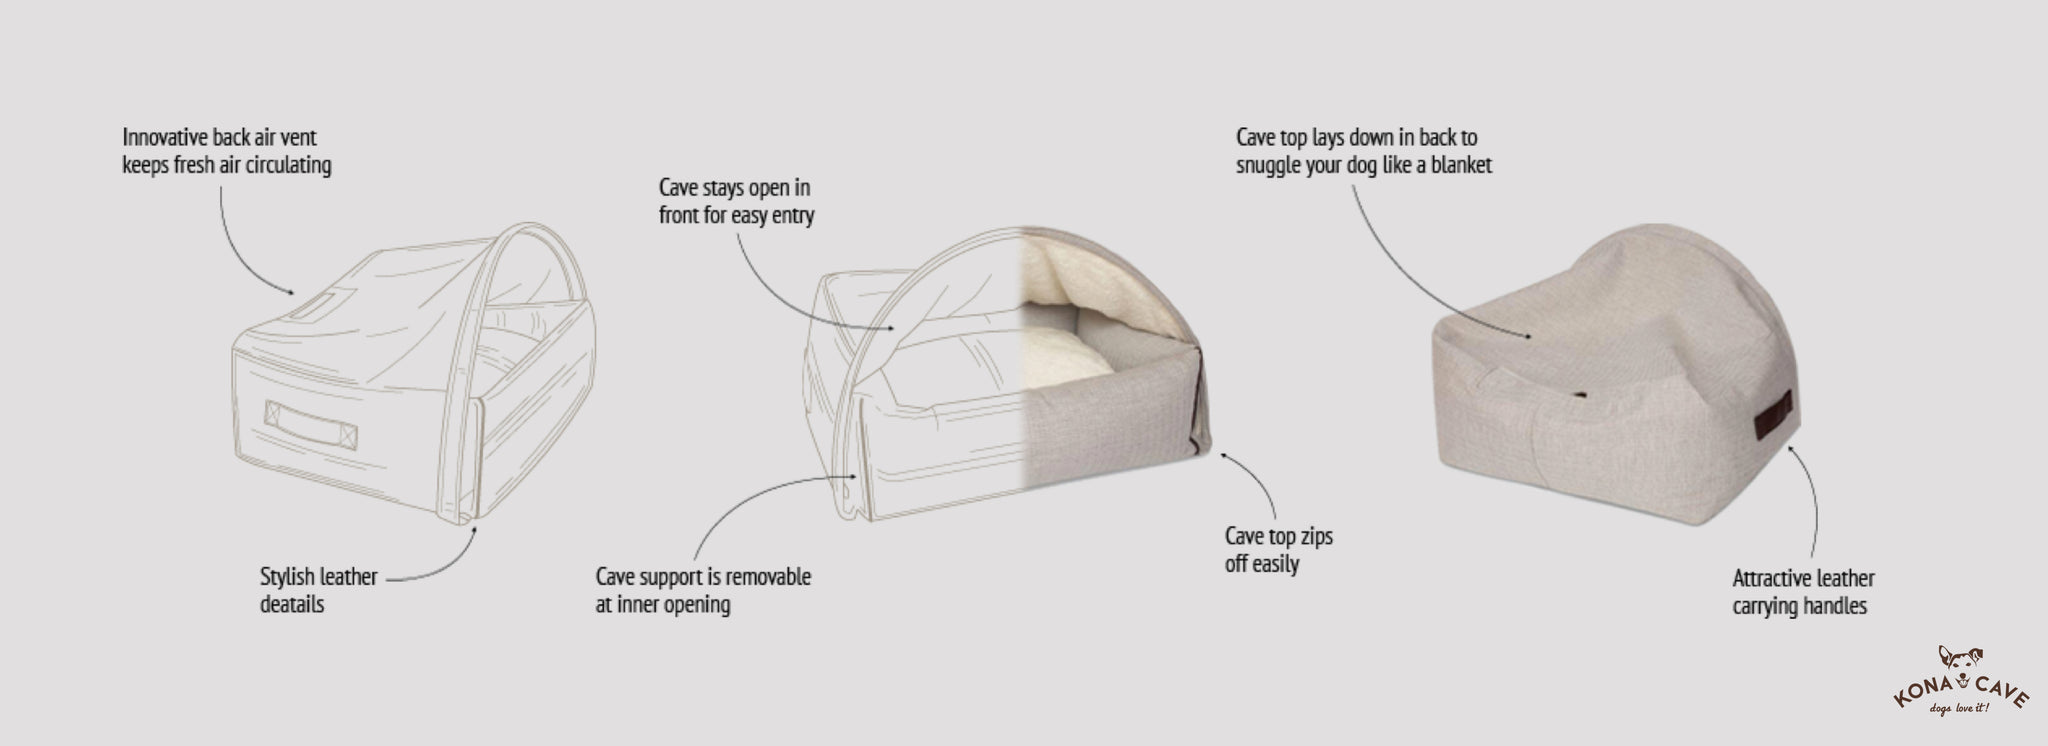 Kona Cave Snuggle Cave Dog Bed patent protected design